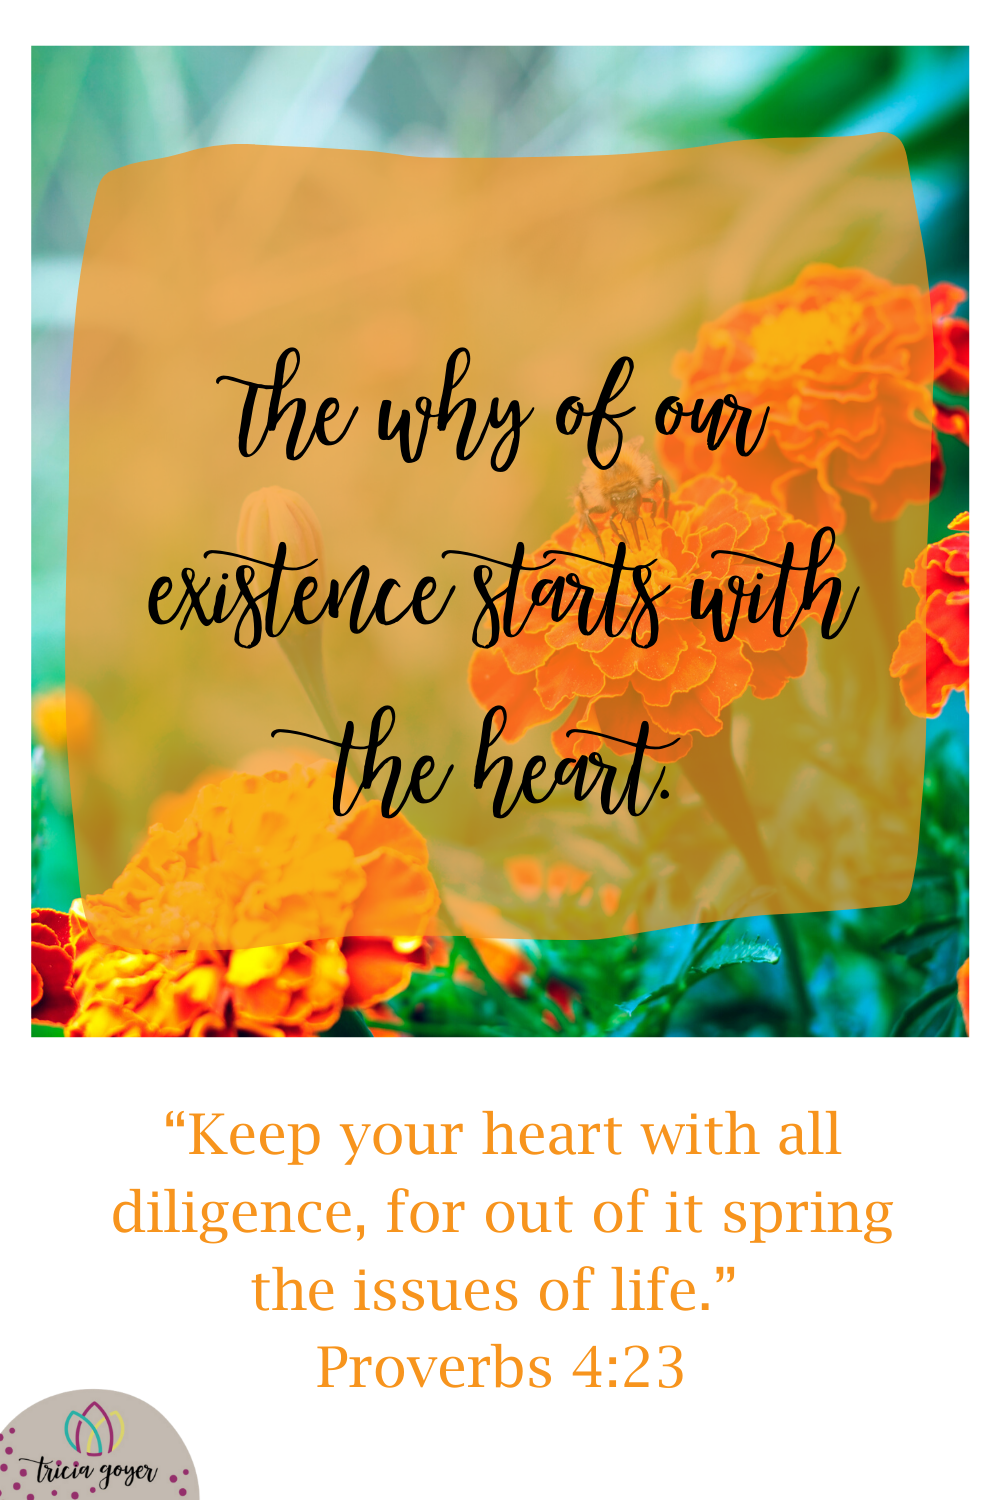 The why of our existence starts with the heart as it says in Proverbs 4:23